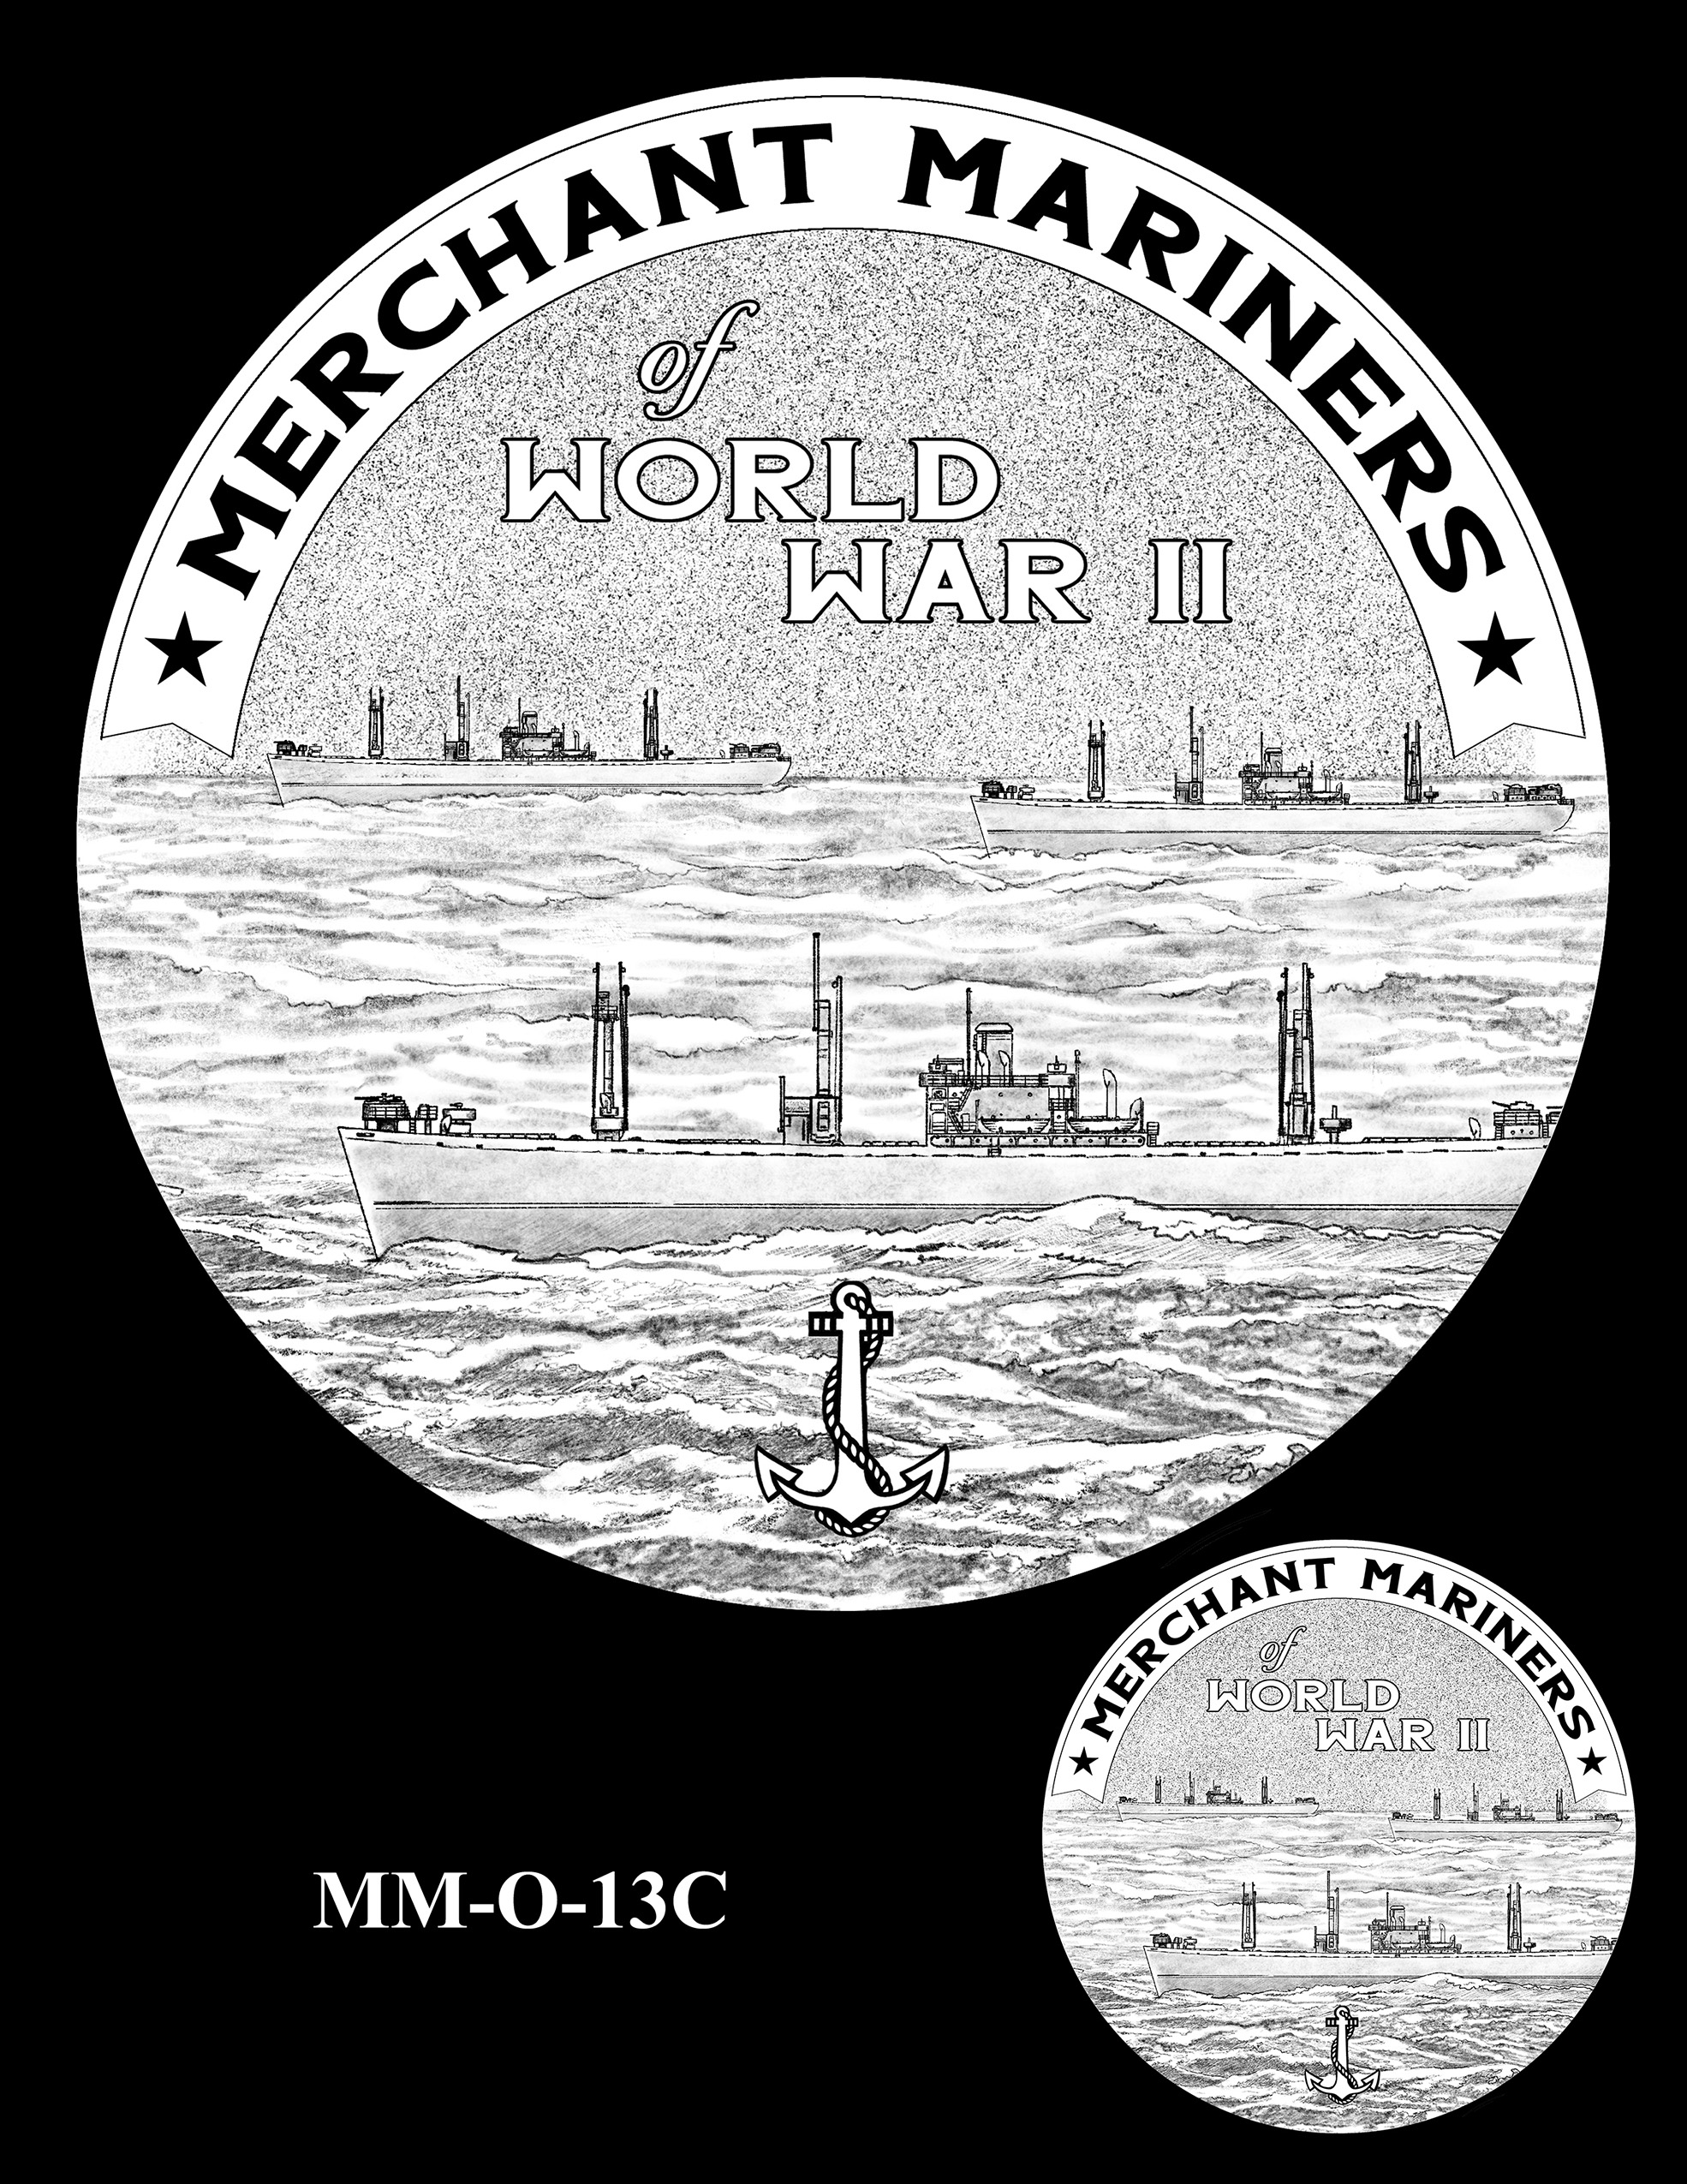 MM-O-13C -- Merchant Mariners of World War II Congressional Gold Medal